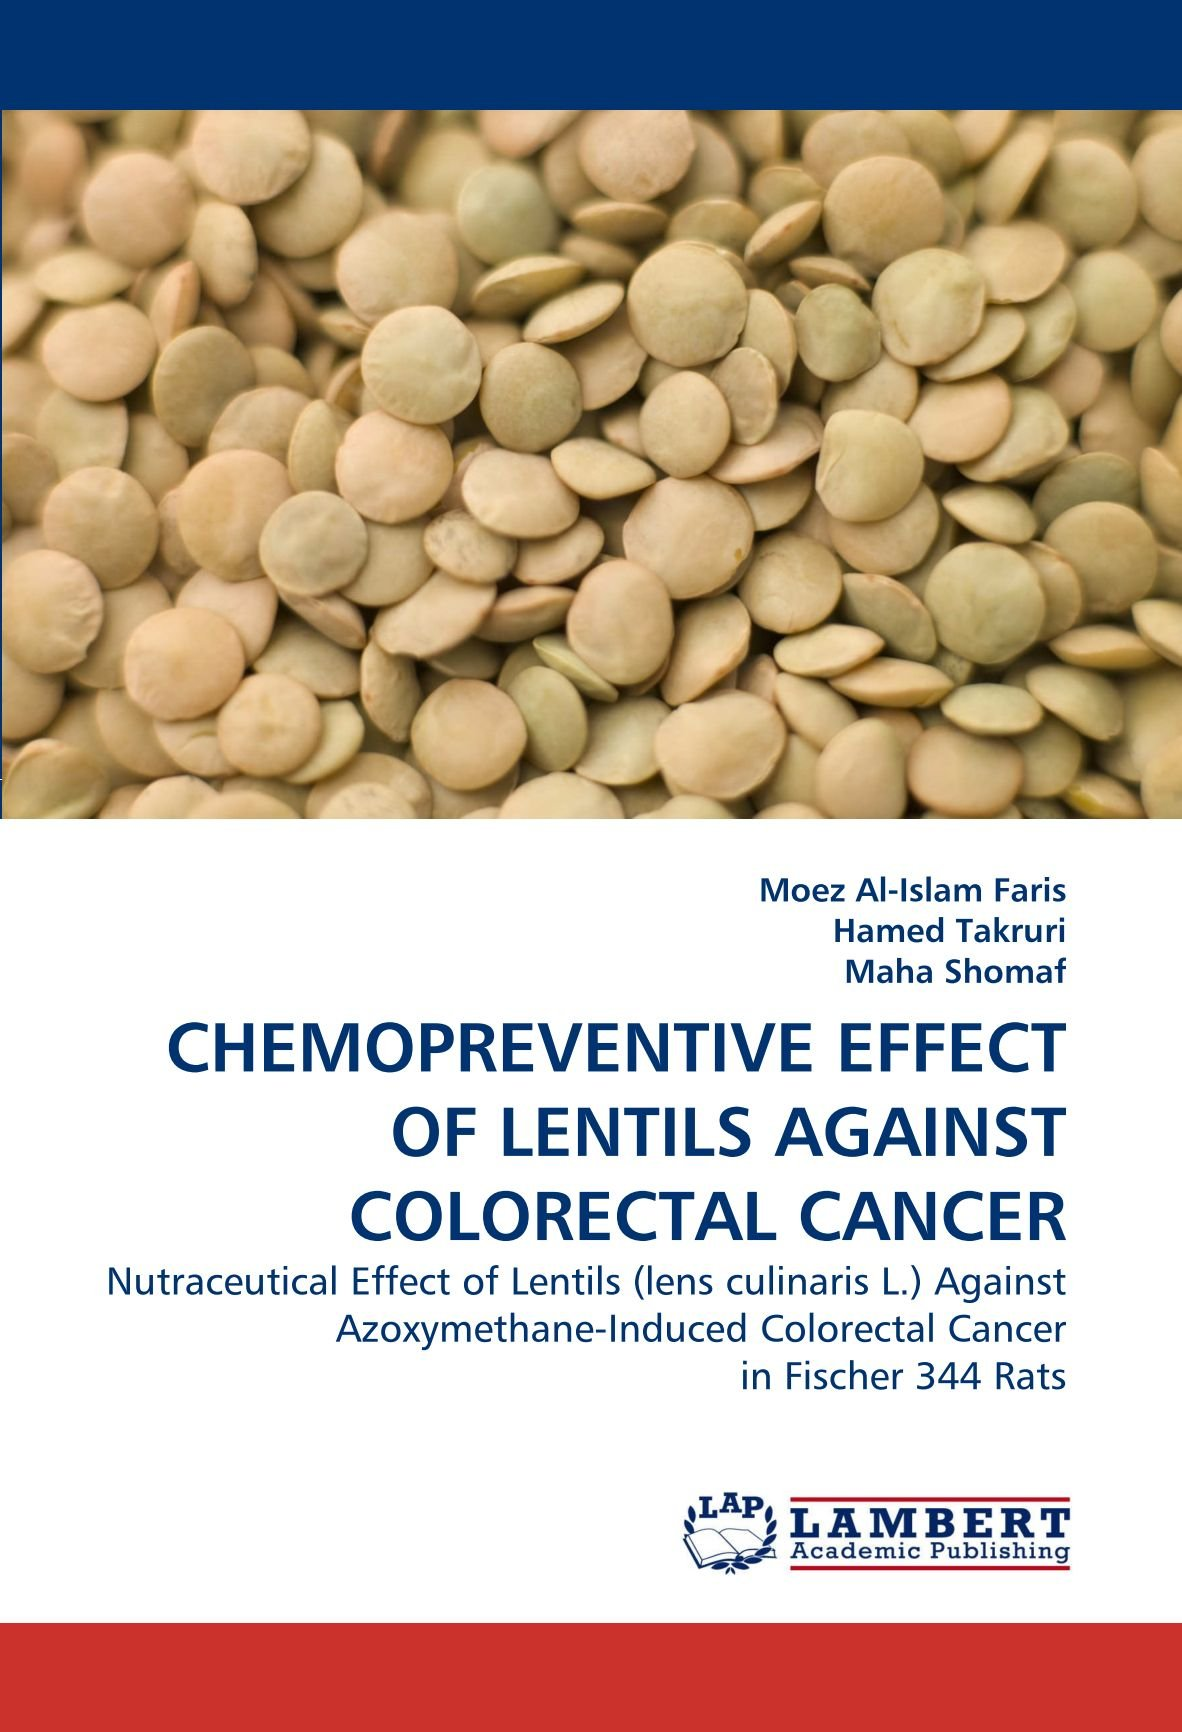 CHEMOPREVENTIVE EFFECT OF LENTILS AGAINST COLORECTAL CANCER: Nutraceutical Effect of Lentils (lens culinaris L.) Against Azoxymethane-Induced Colorectal Cancer in Fischer 344 Rats pdf